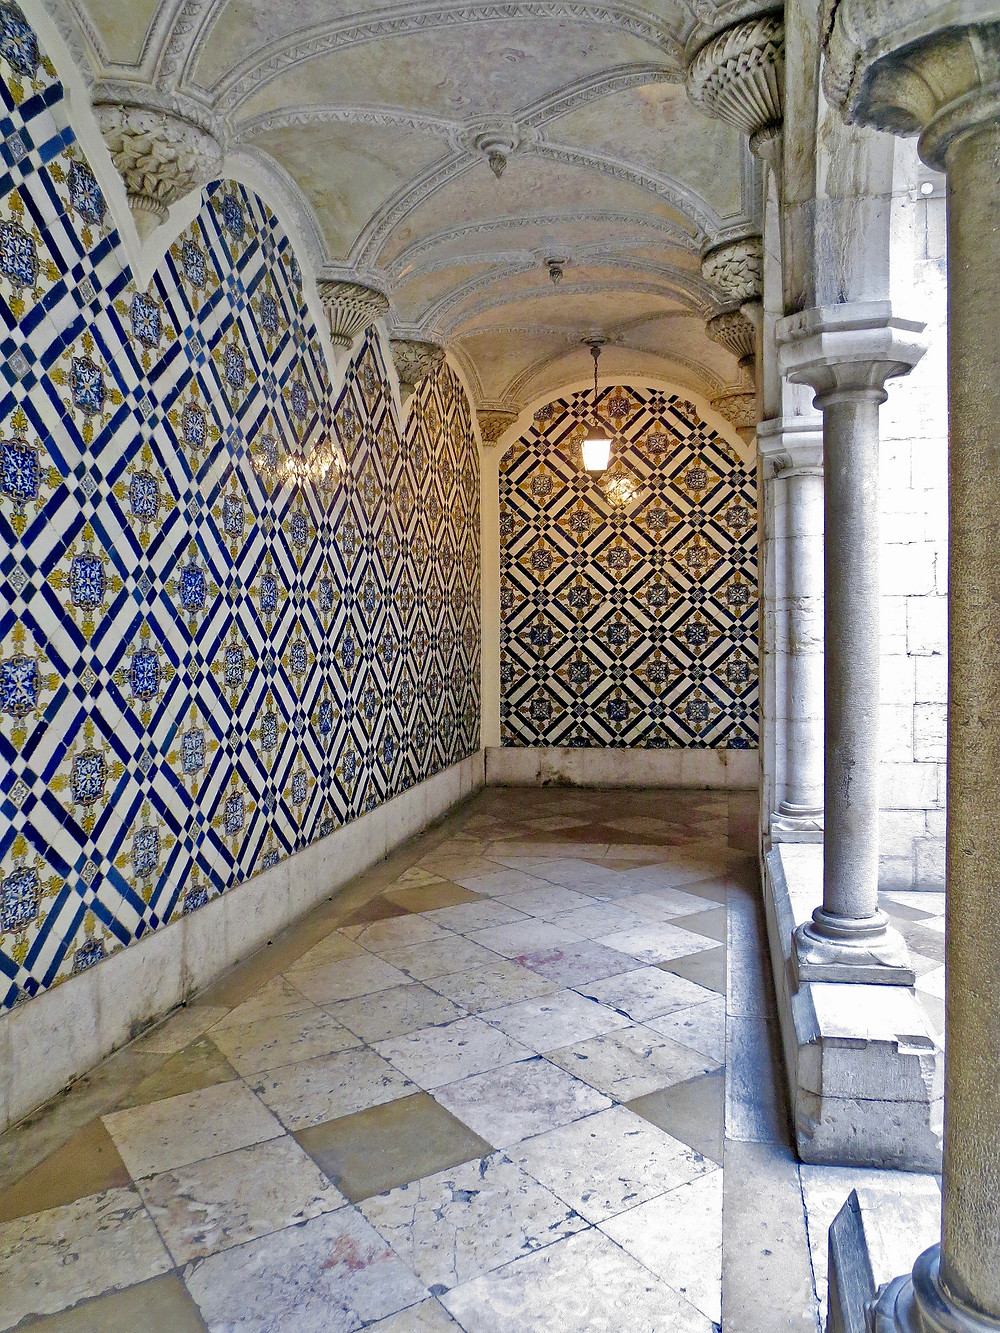 azulejo-clad corridor in the National Tile Museum